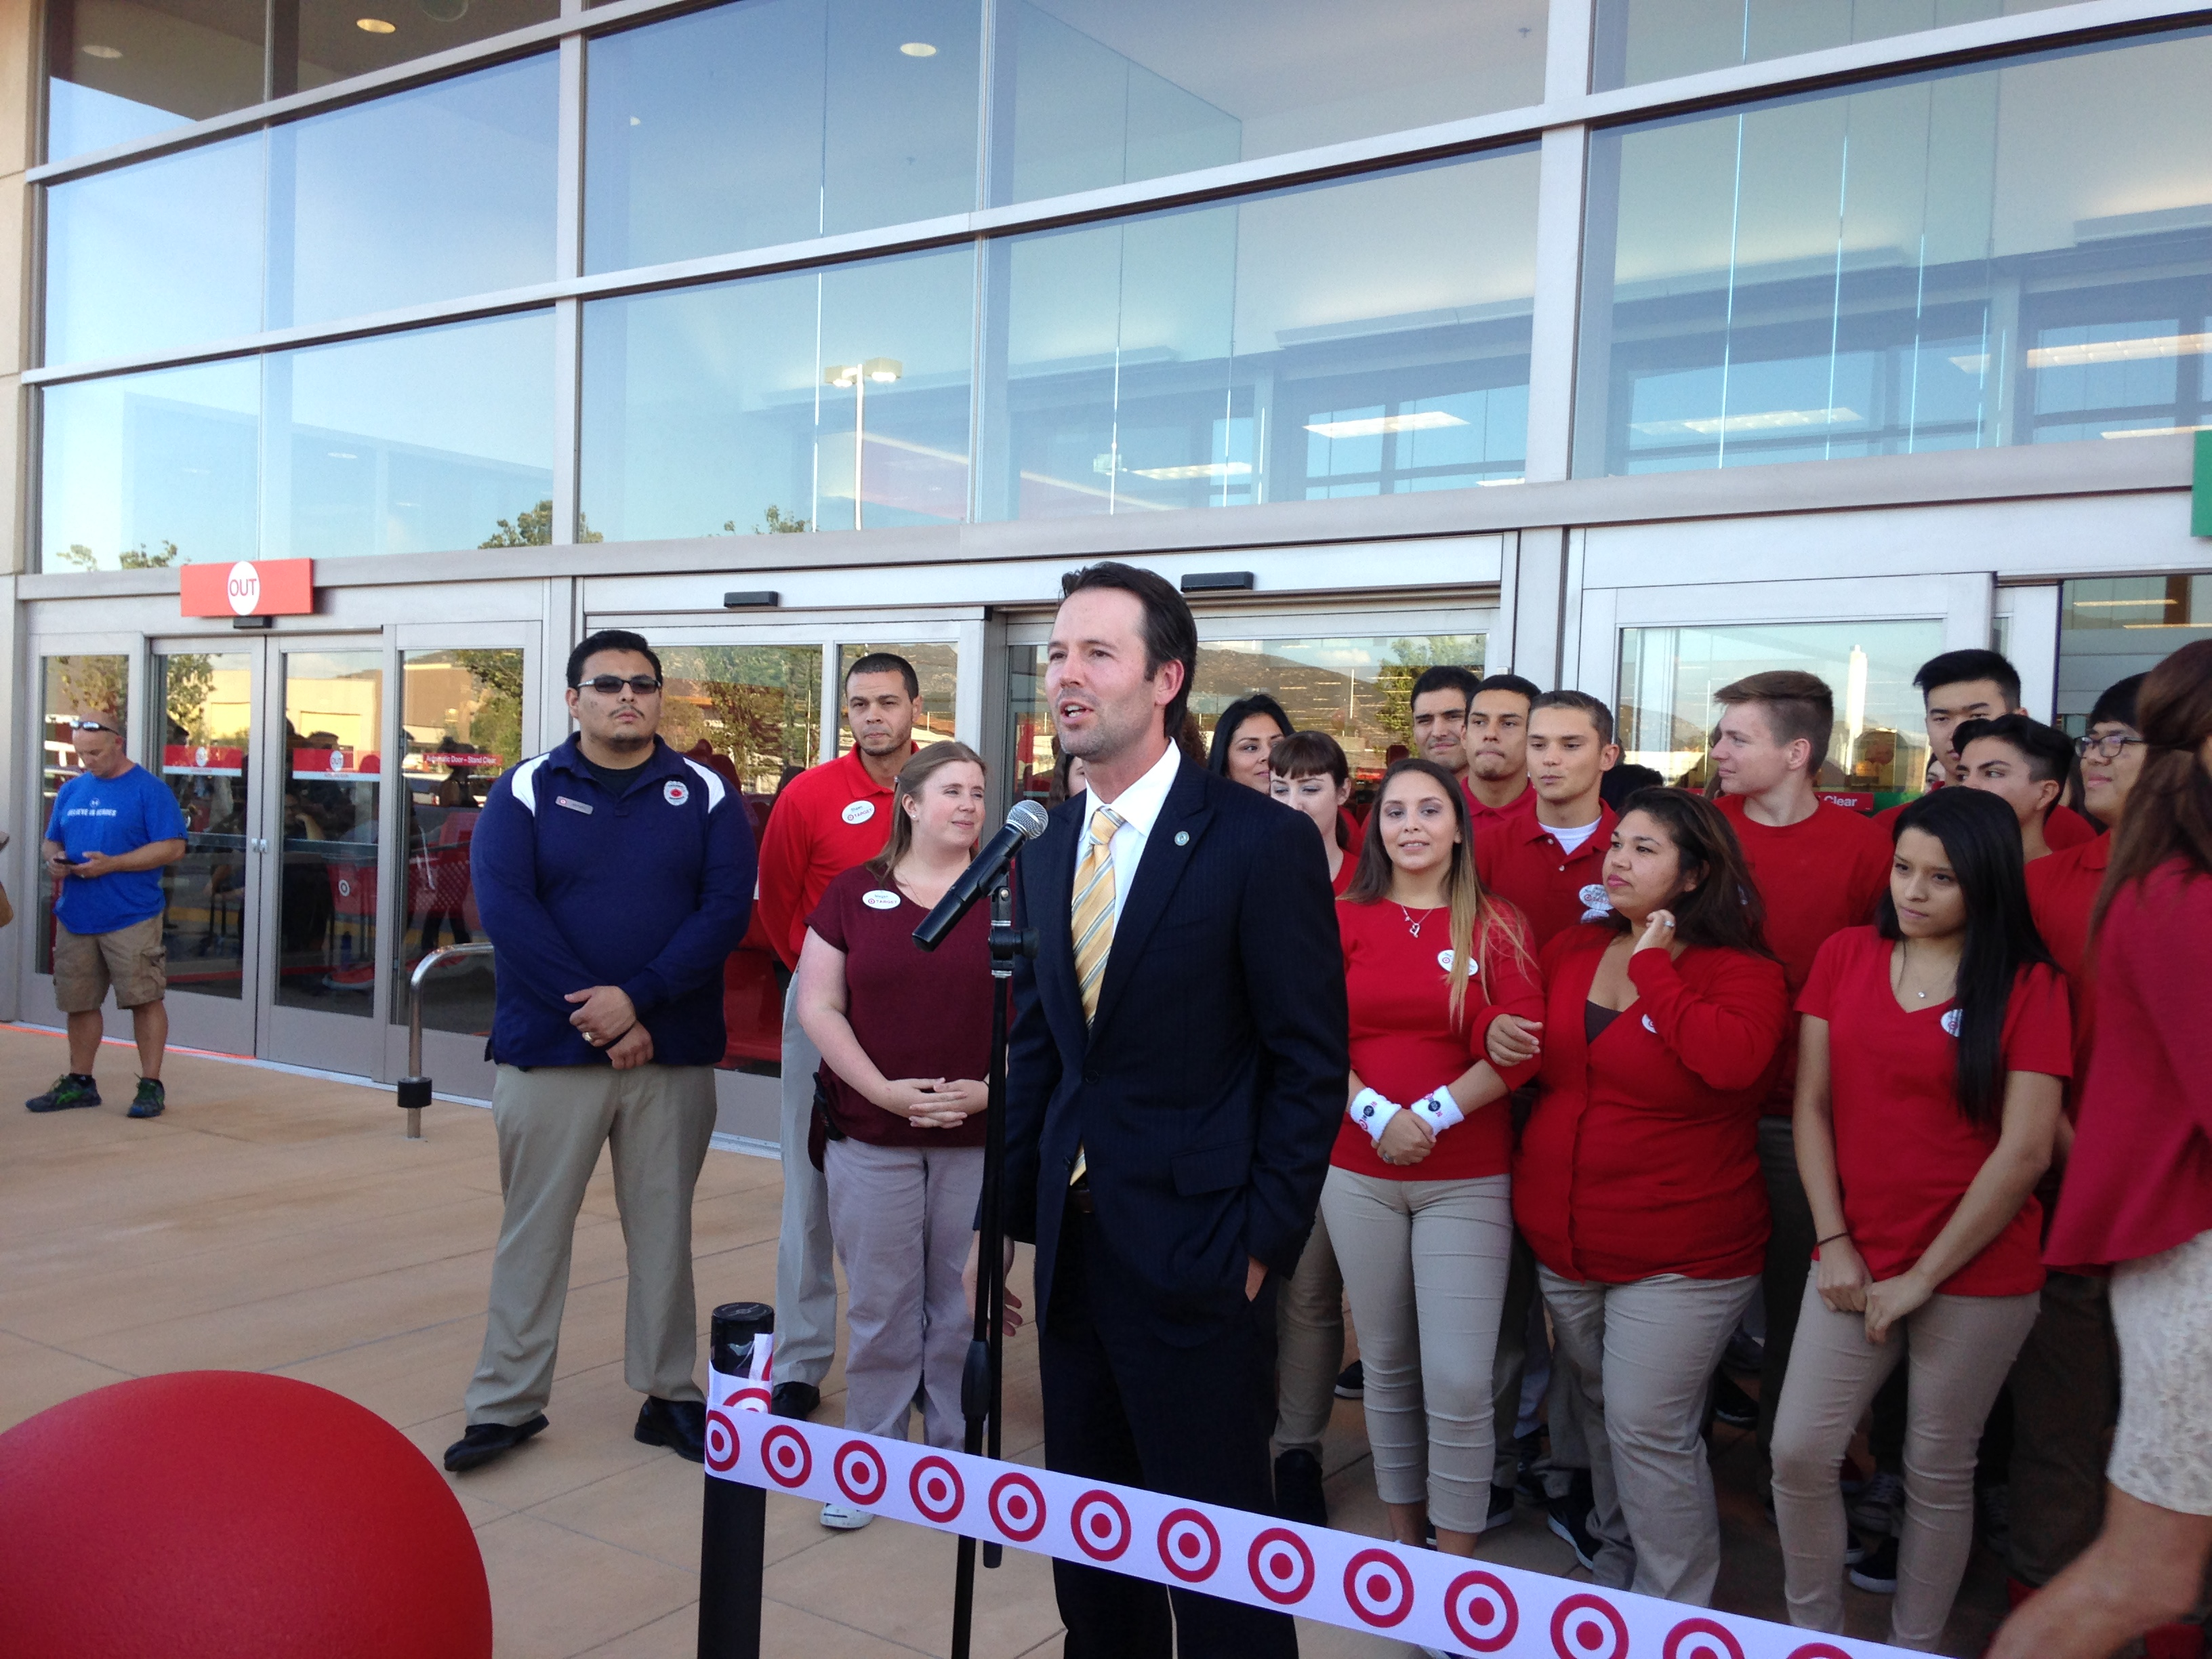 10/6/15 Del Sur Target Grand Opening